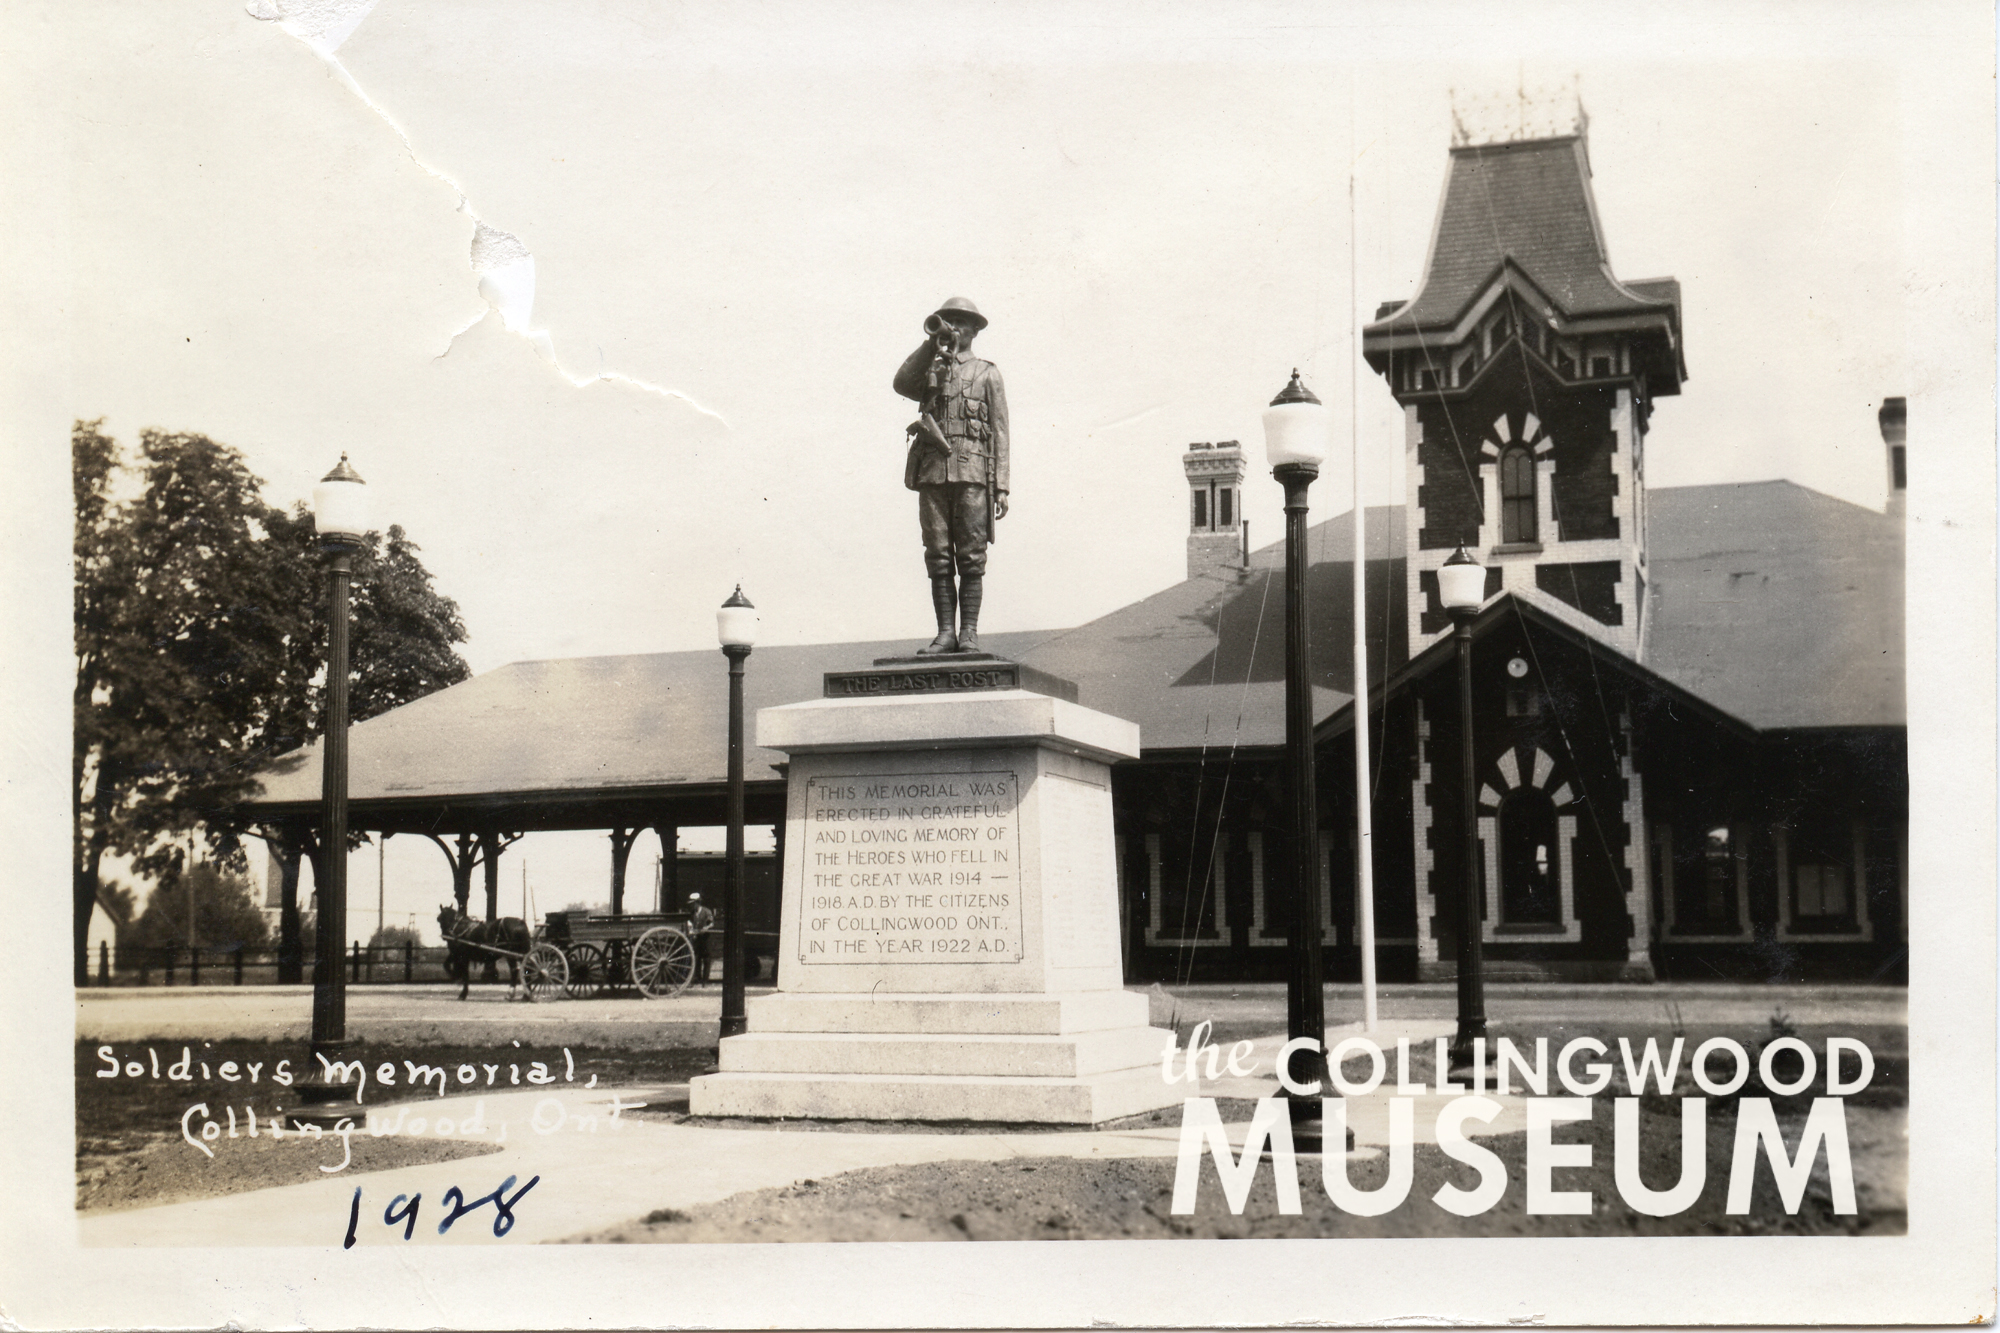 Thievery, physical threats: Collingwood's cenotaph had a controversial journey to its final home - CollingwoodToday